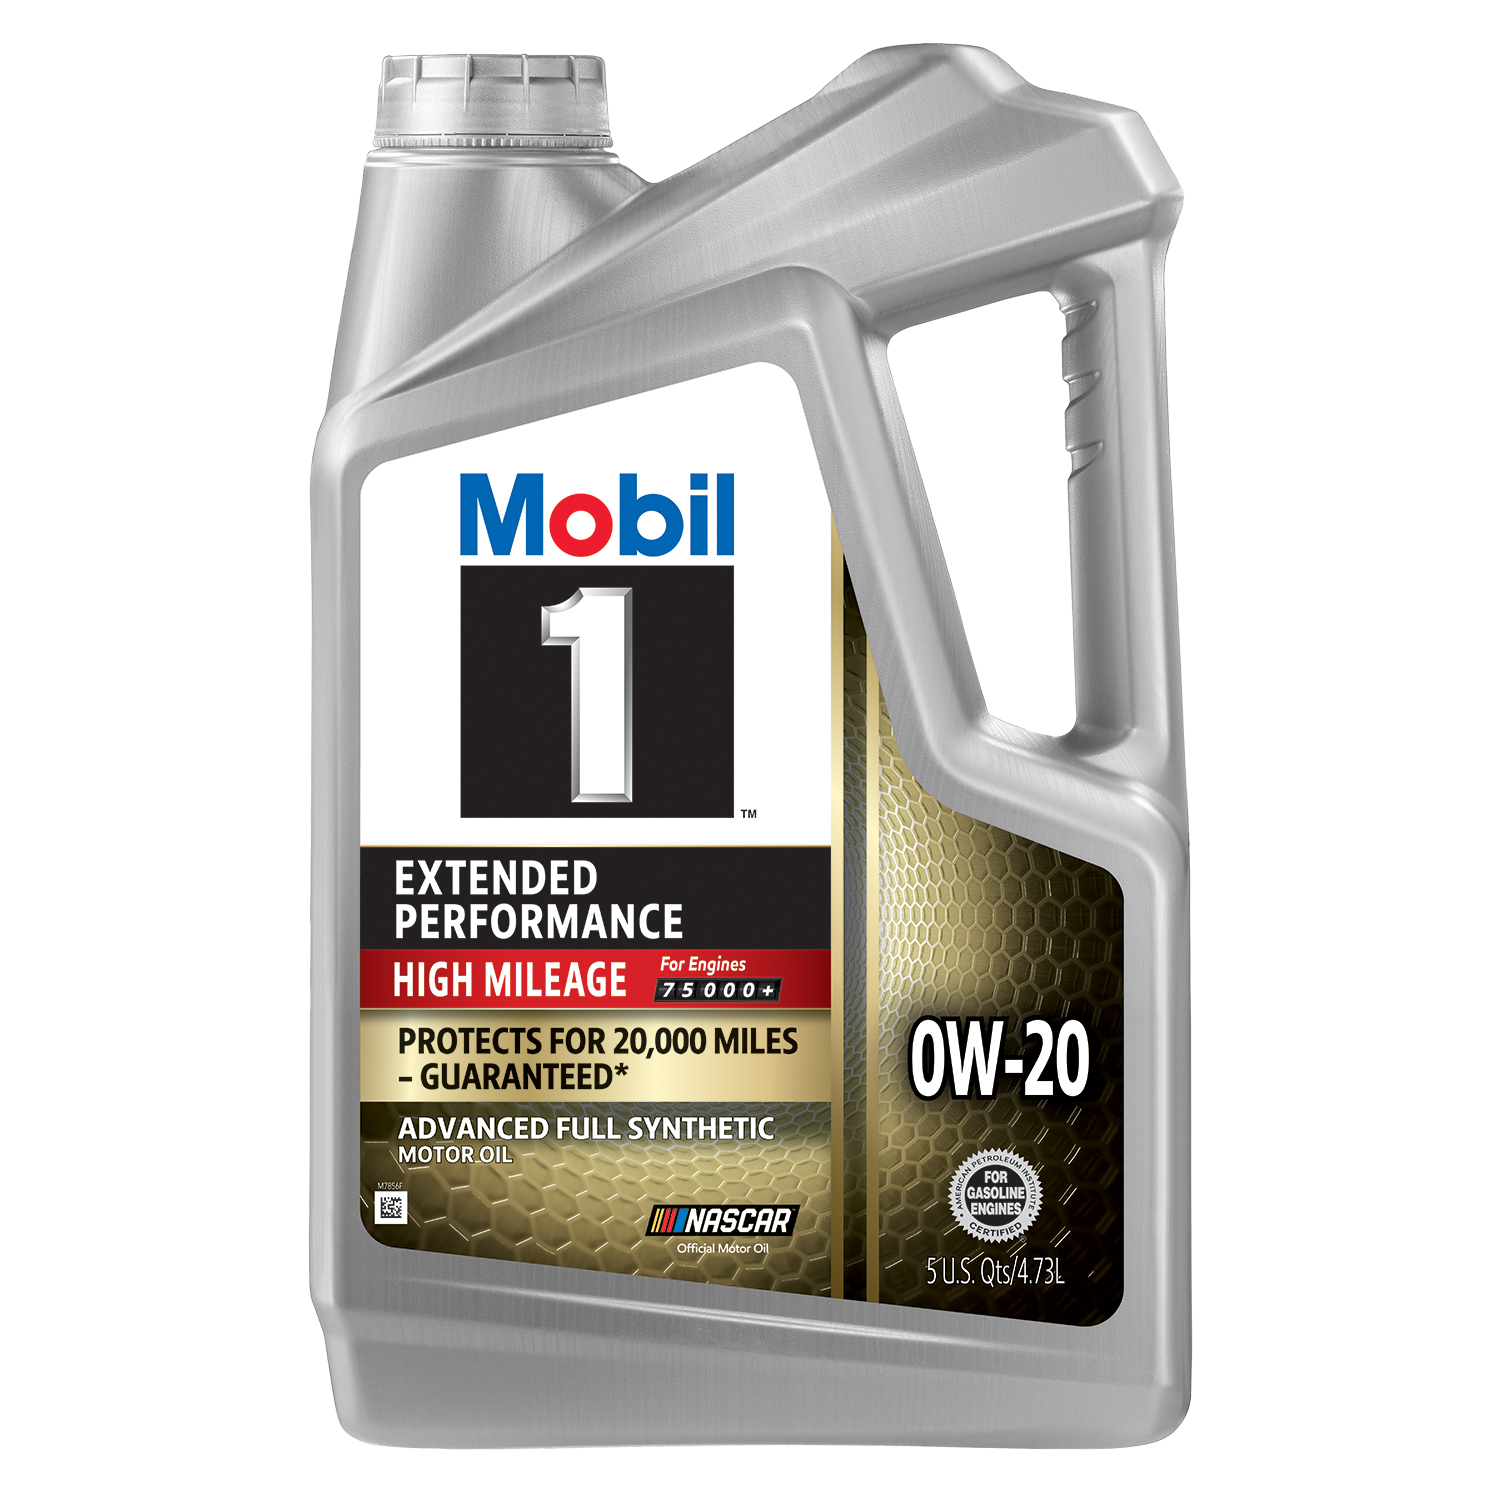 Mobil 1 Extended Performance High Mileage Full Synthetic Motor Oil 0W-20, 5 Quart - Walmart.com